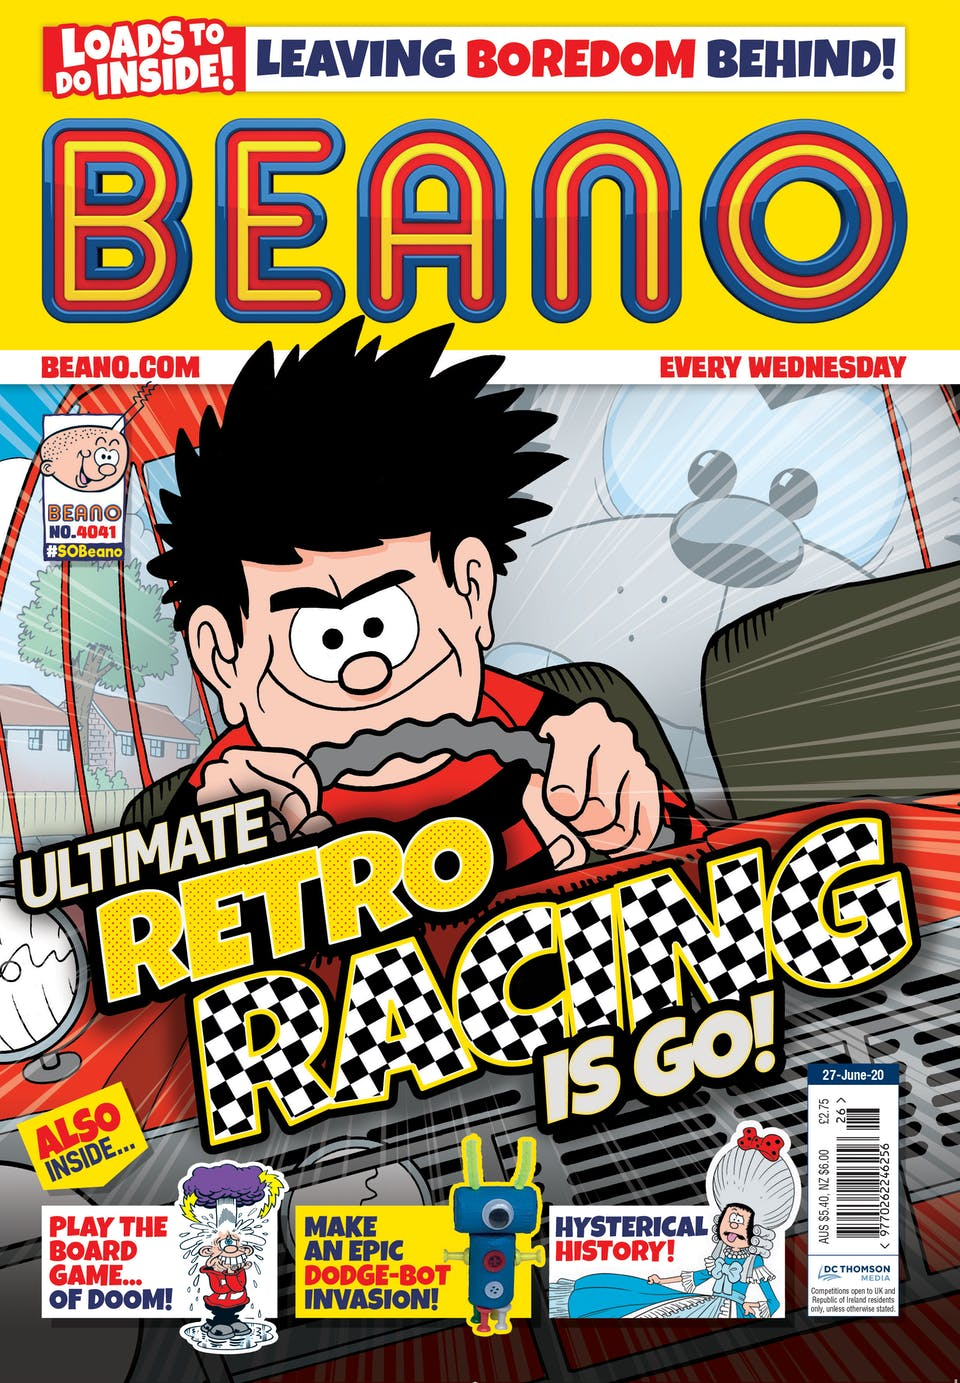 Inside Beano Issue 4041 - On your marks, get set... Race!